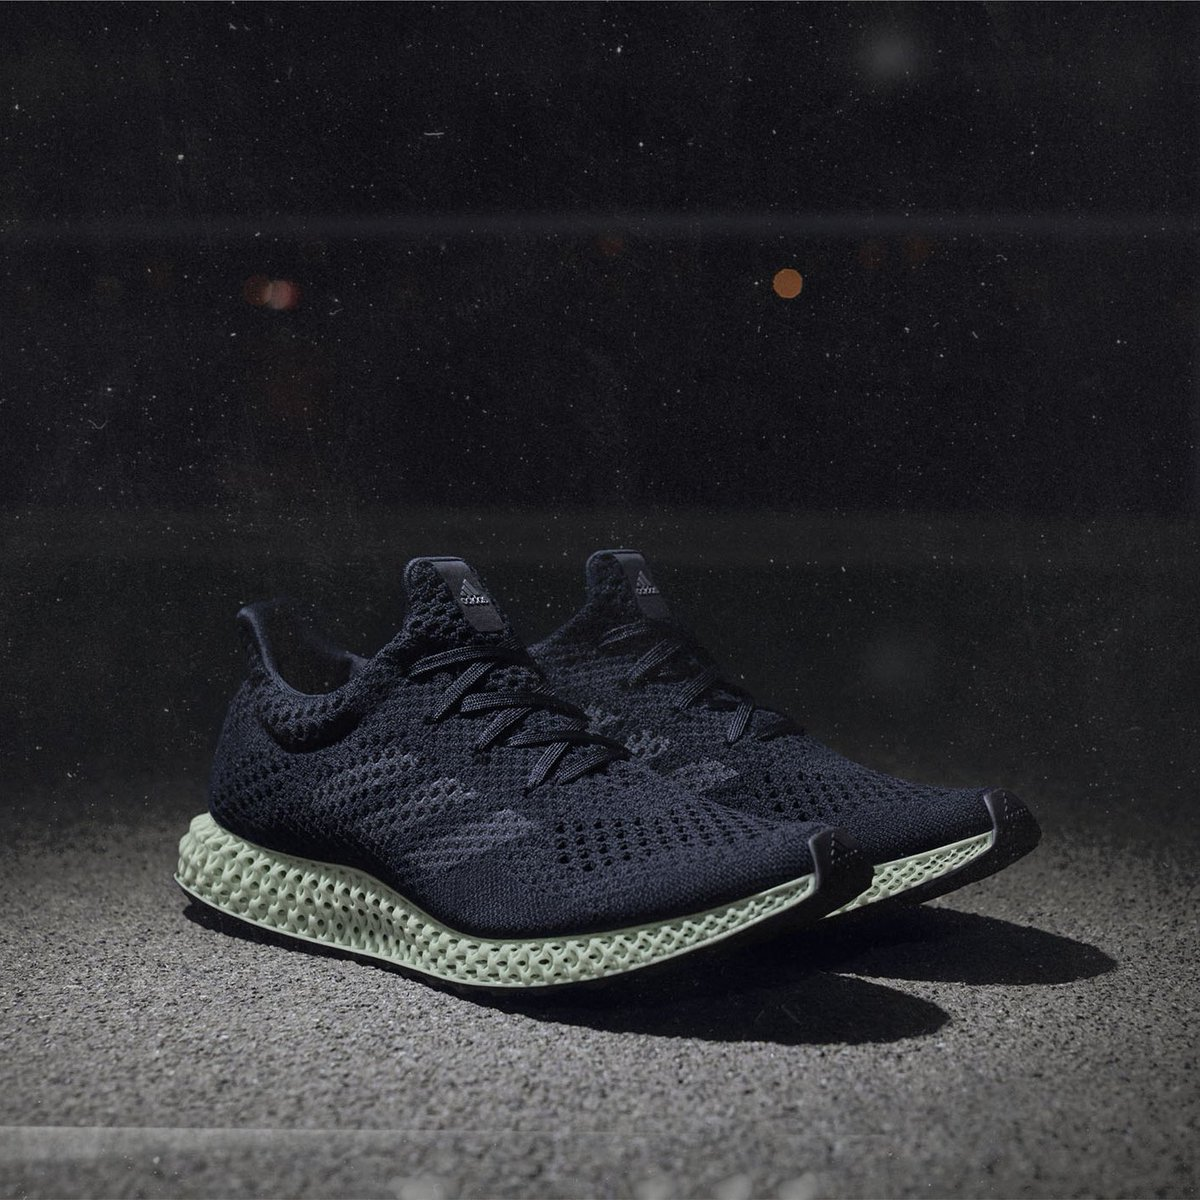 77ceba033 futurecraft hashtag on Twitter